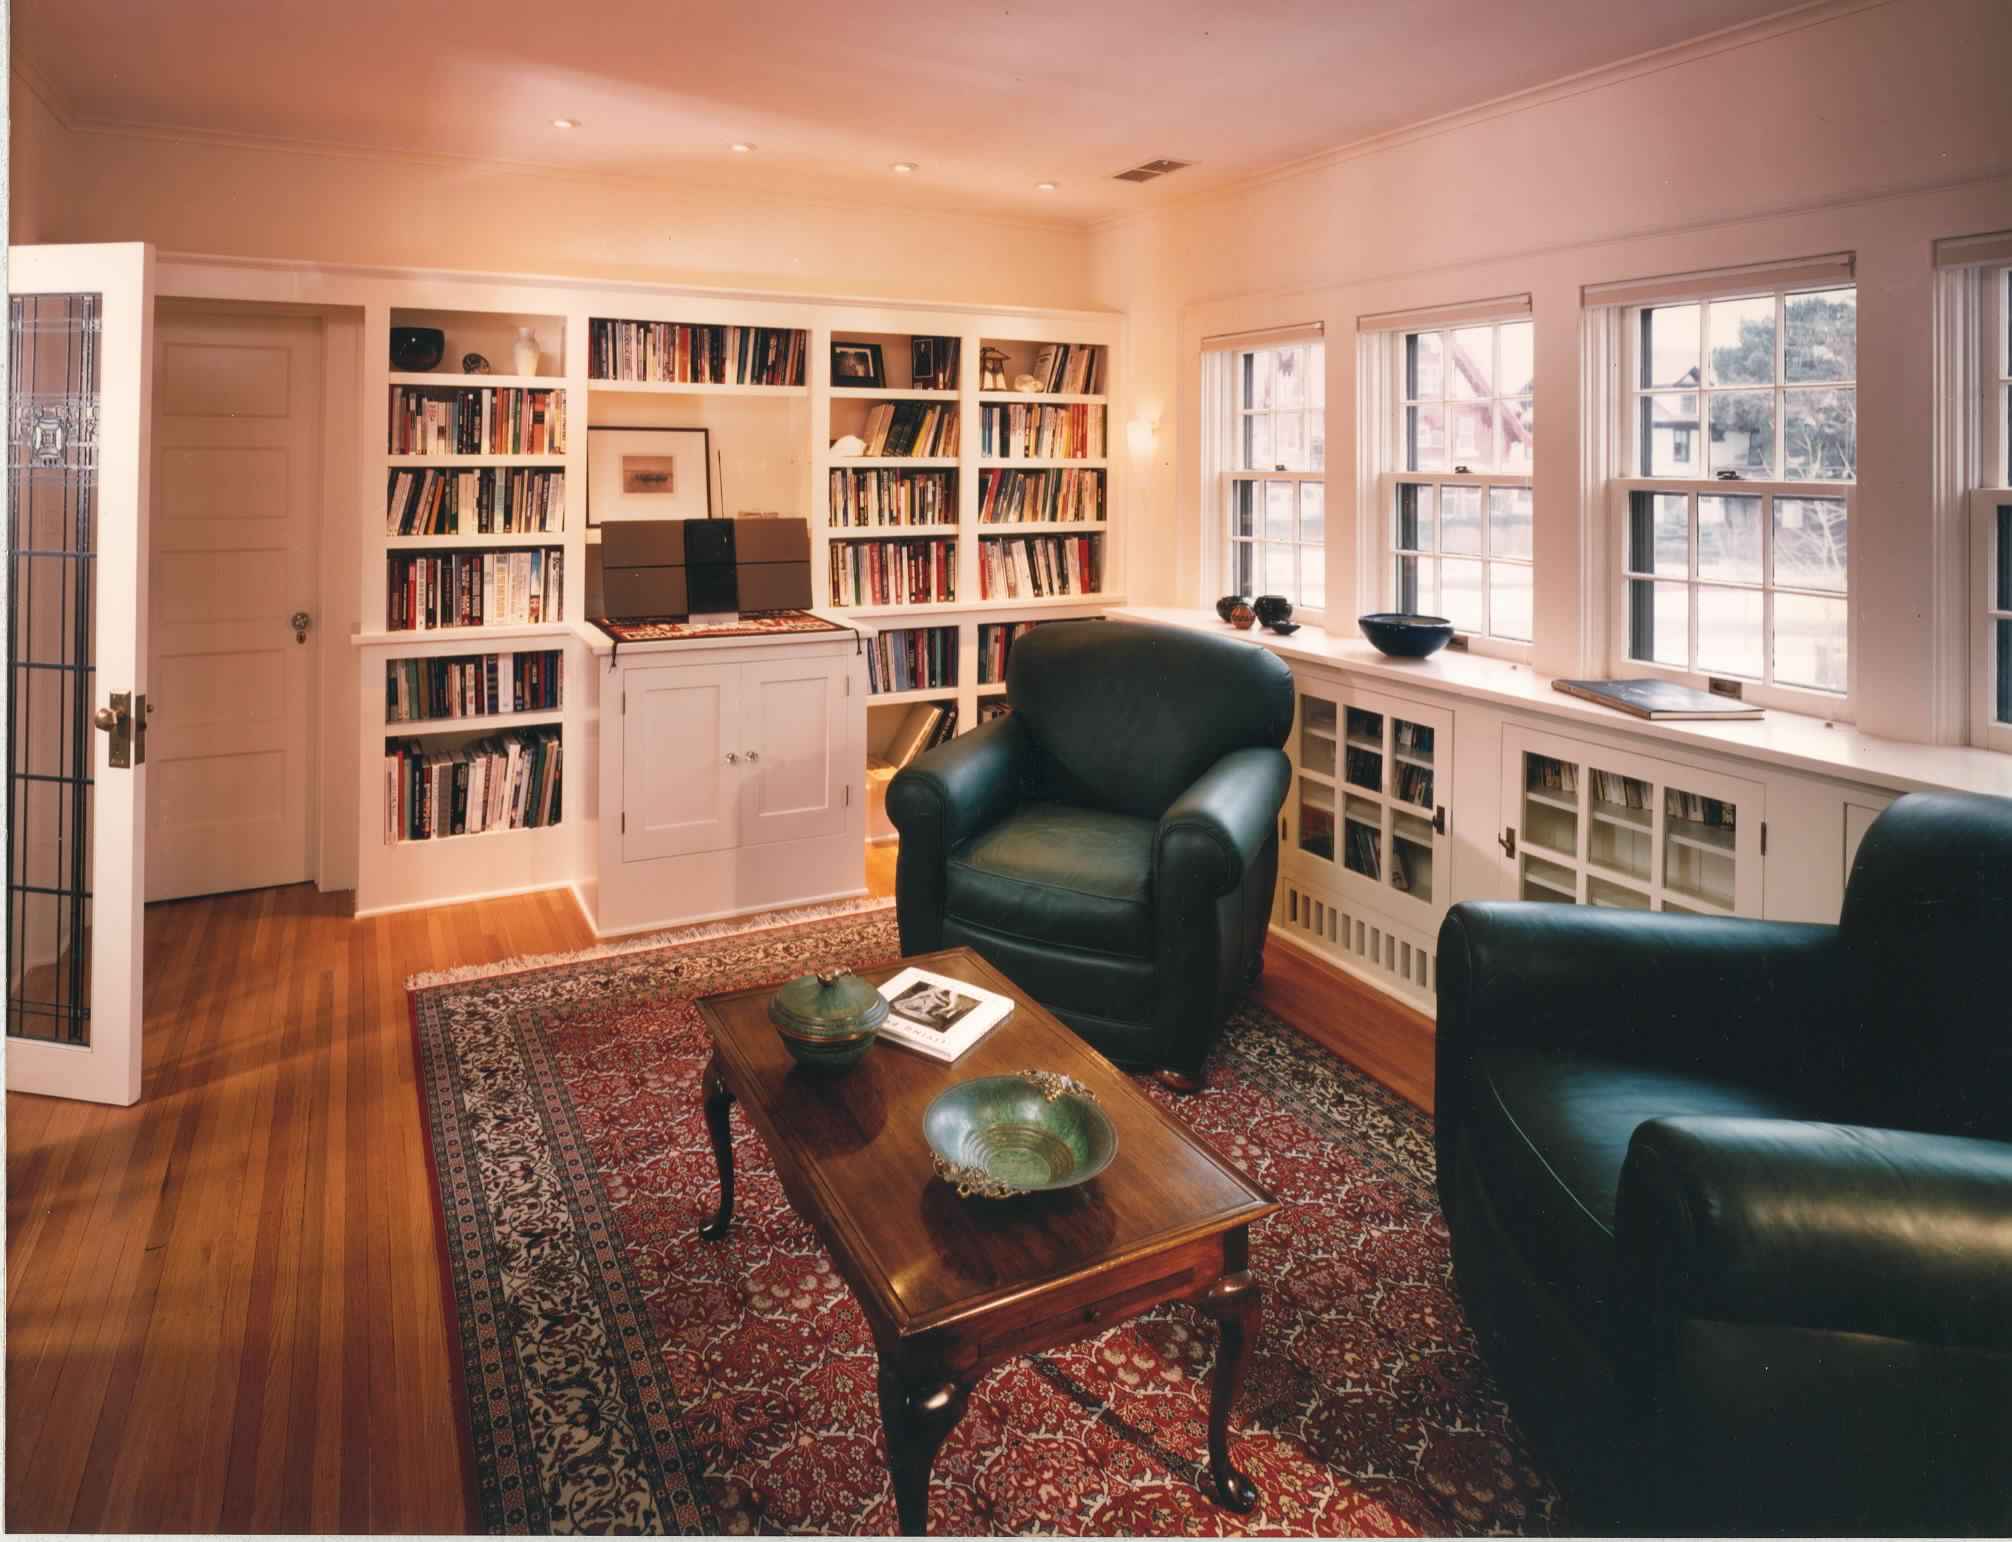 Library and living area